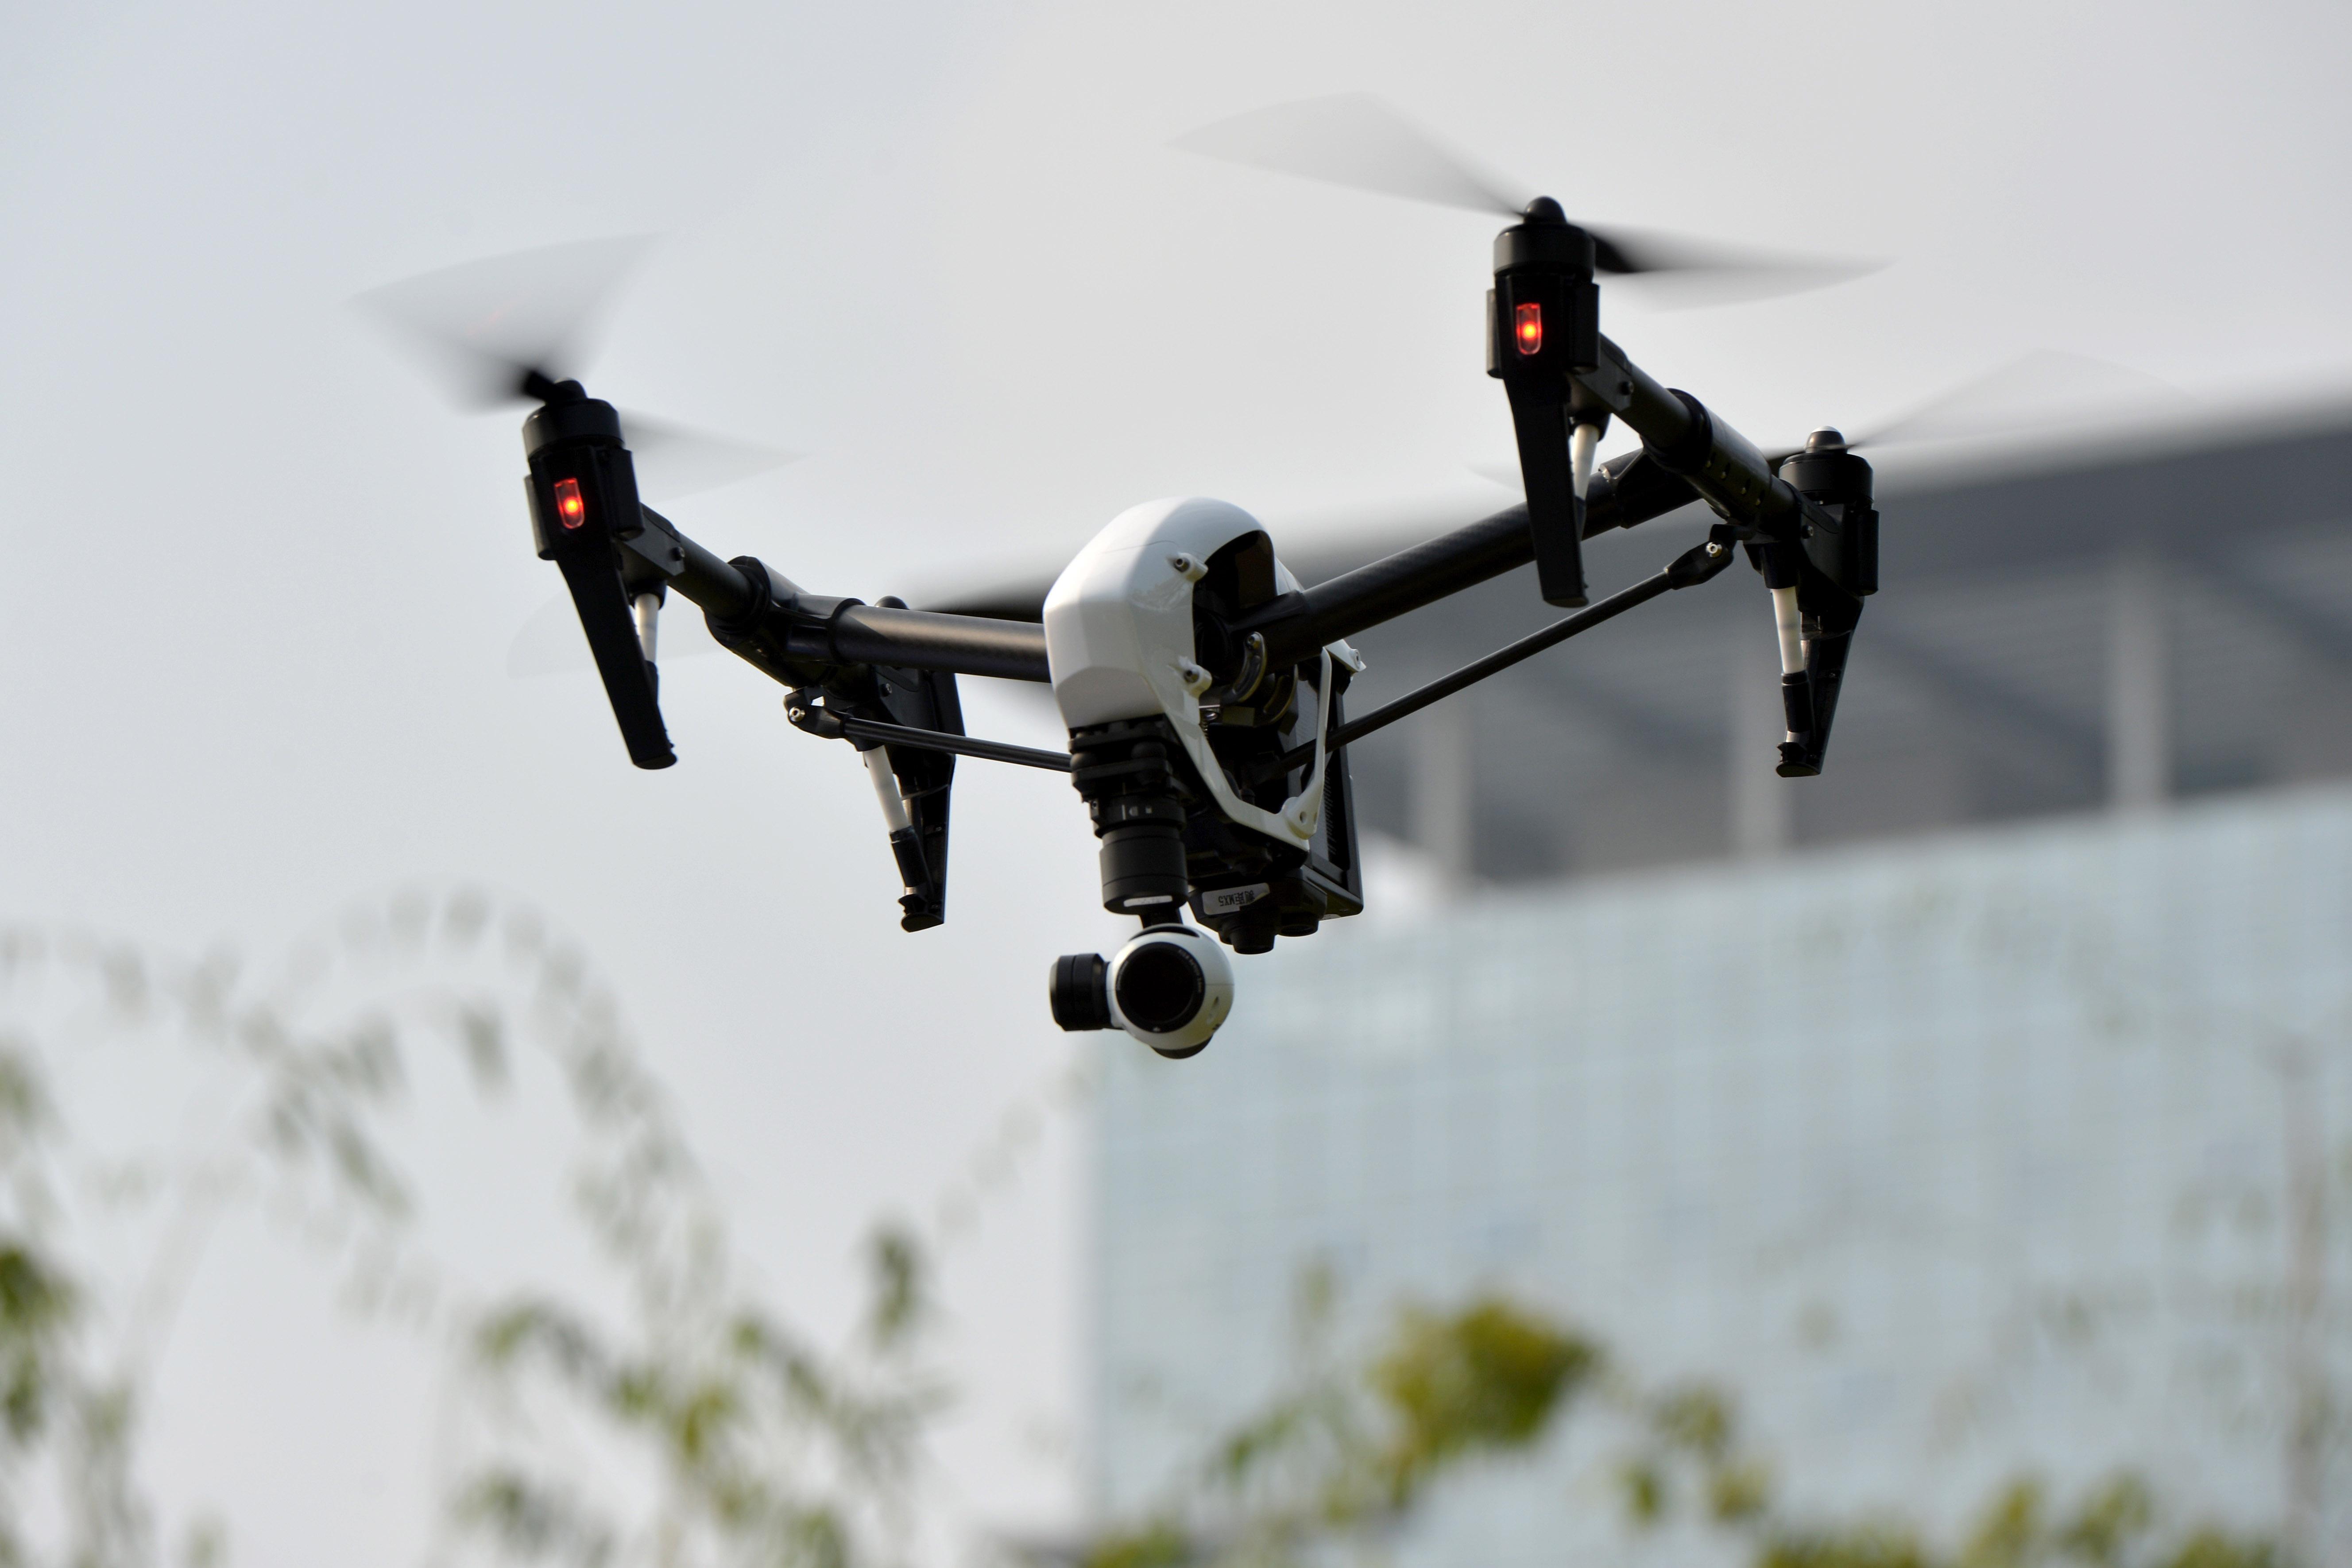 The 'Inspire 1' drone is presented outdoors on November 26, 2014 in Shenzhen, Guangdong province of China.